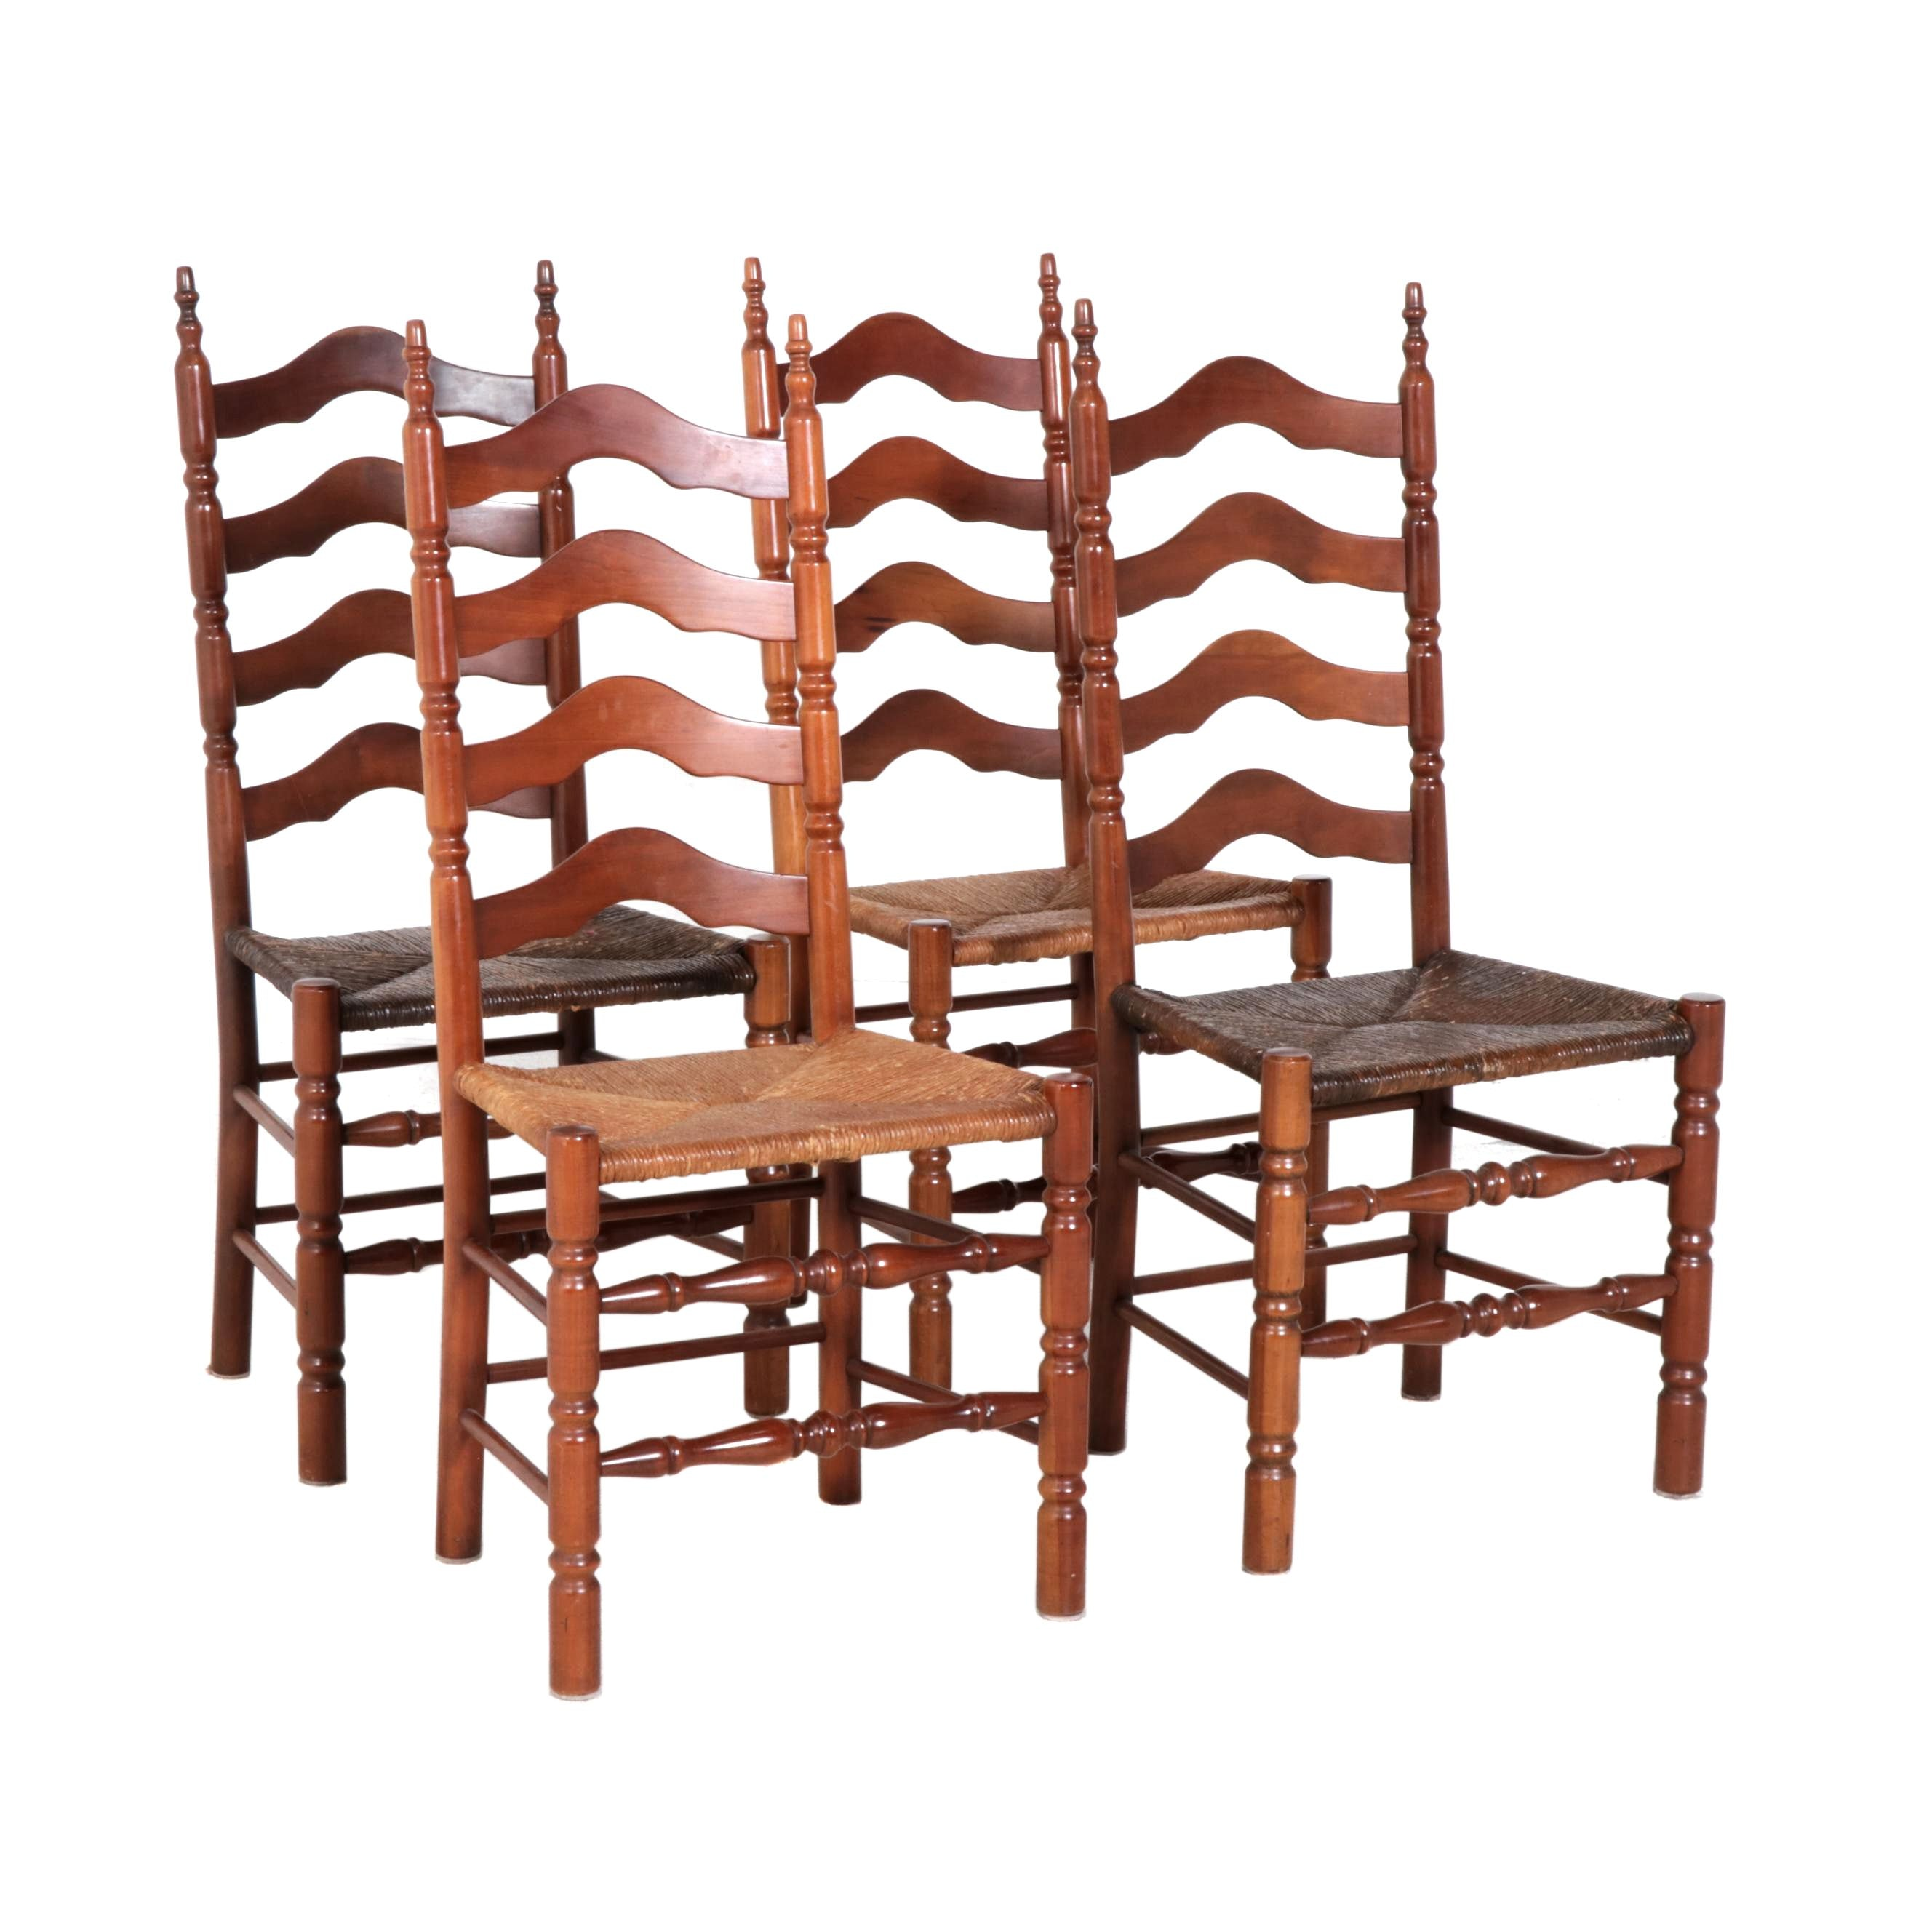 Ladderback Chairs with Rush Seats, Mid-Century